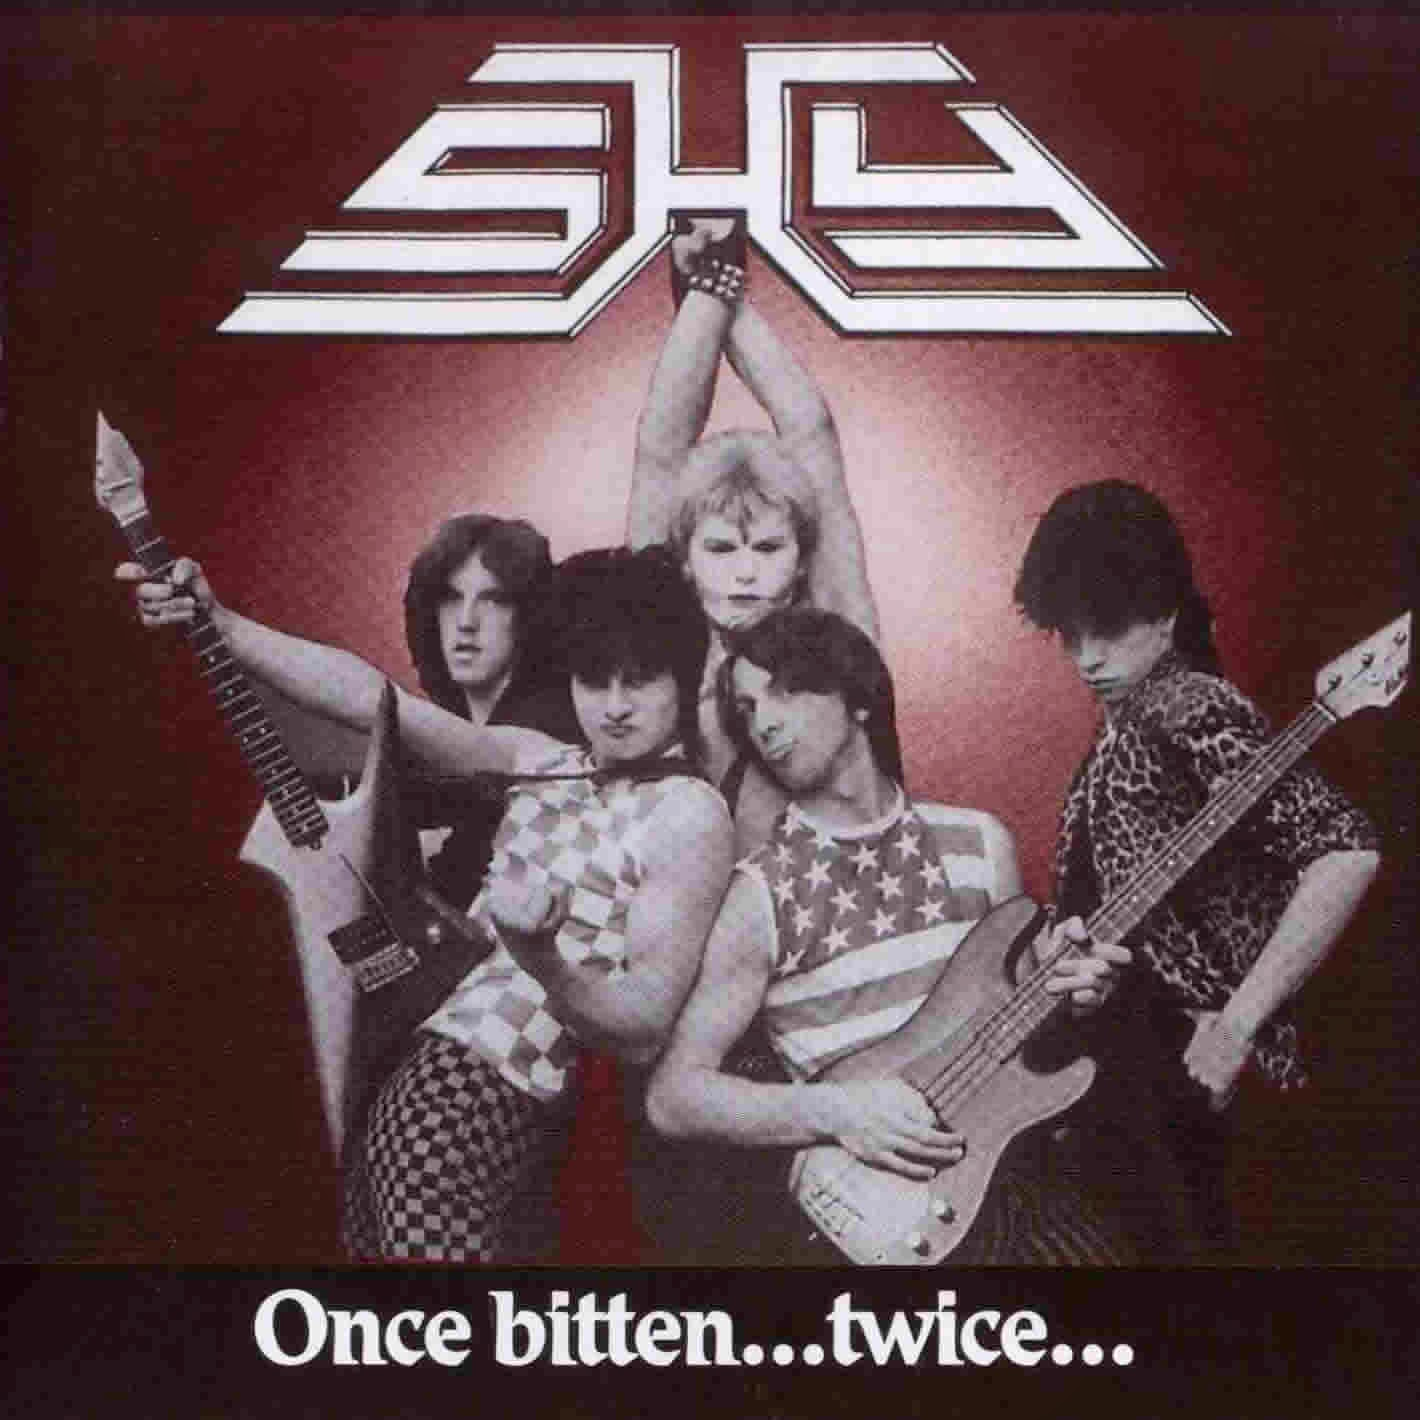 Shy Once bitten twice shy 1983 aor melodic rock music blogspot albums bands